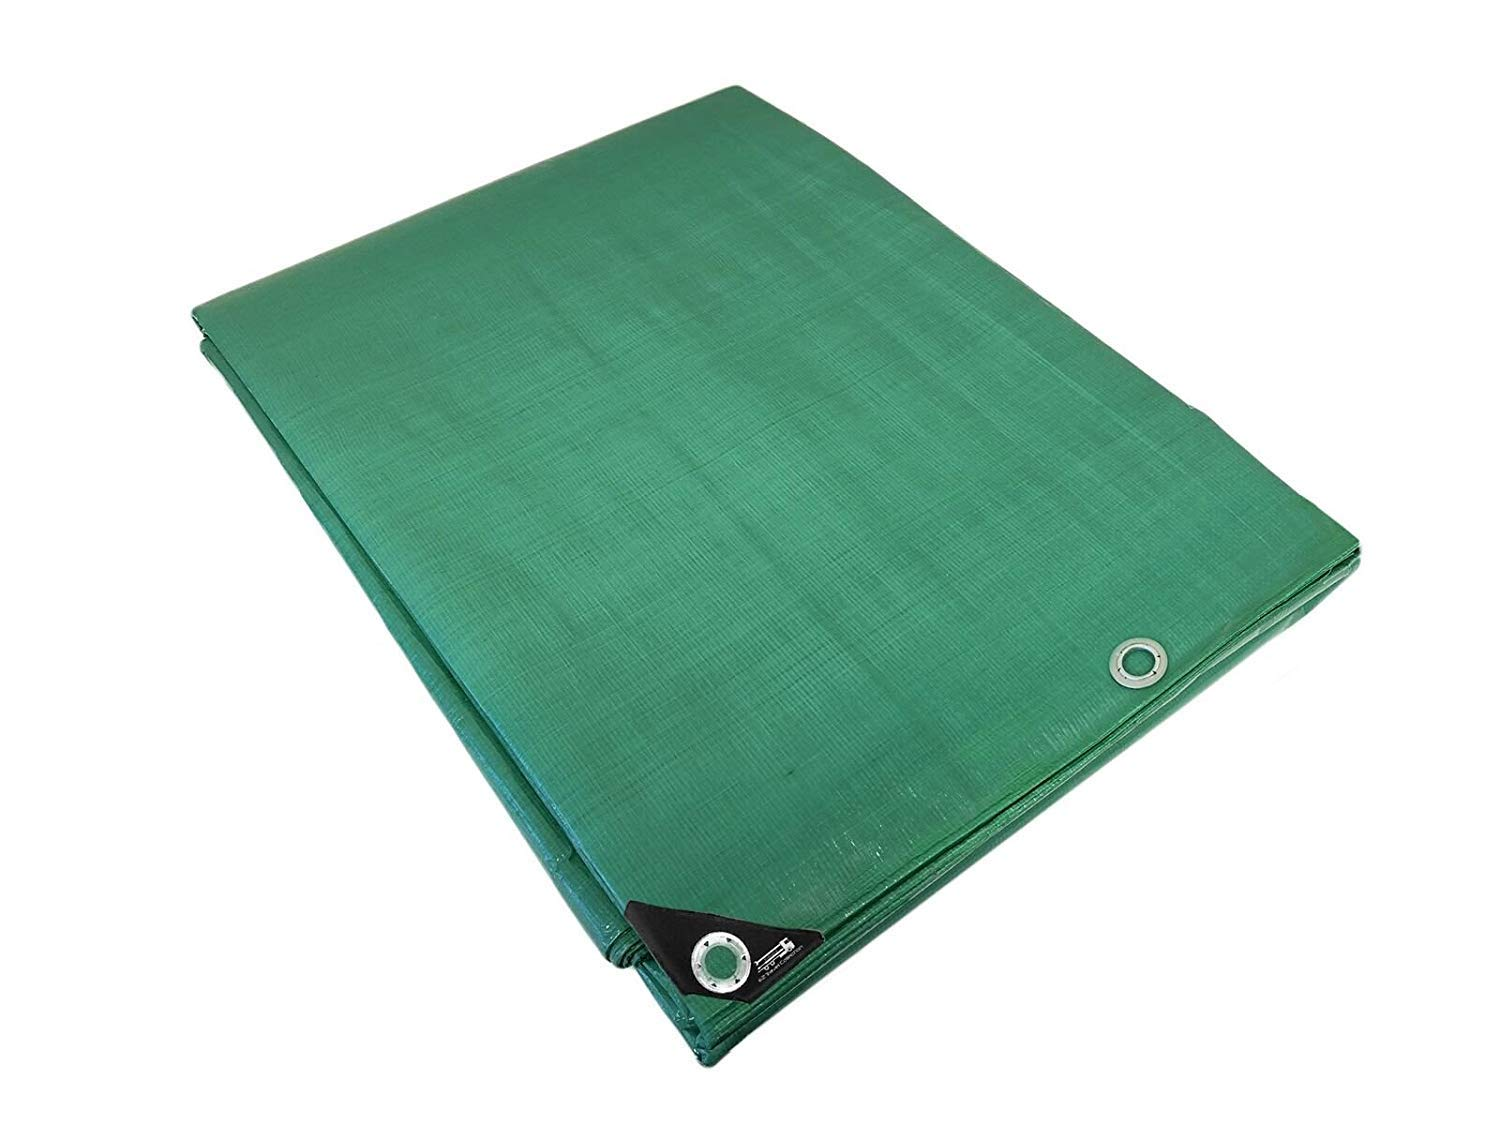 Heavy Duty Waterproof Green Tarp with Reinforced Corners Bundled with Carabiner Flashlight 8X10 EZ Travel Distribution